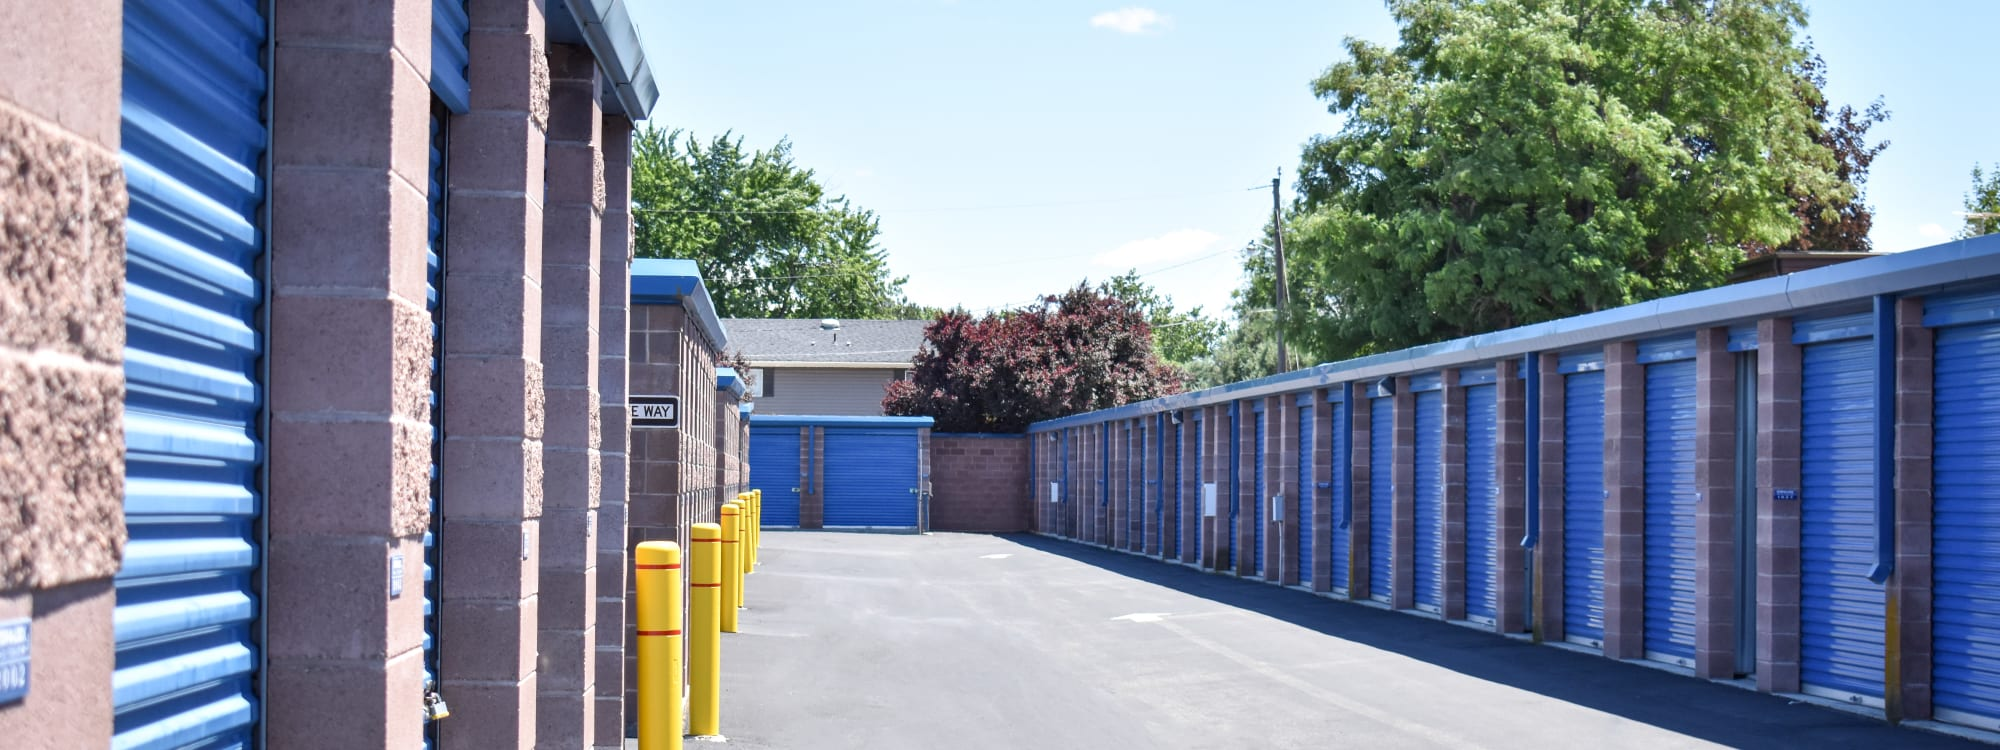 STOR-N-LOCK Self Storage in Boise, Idaho